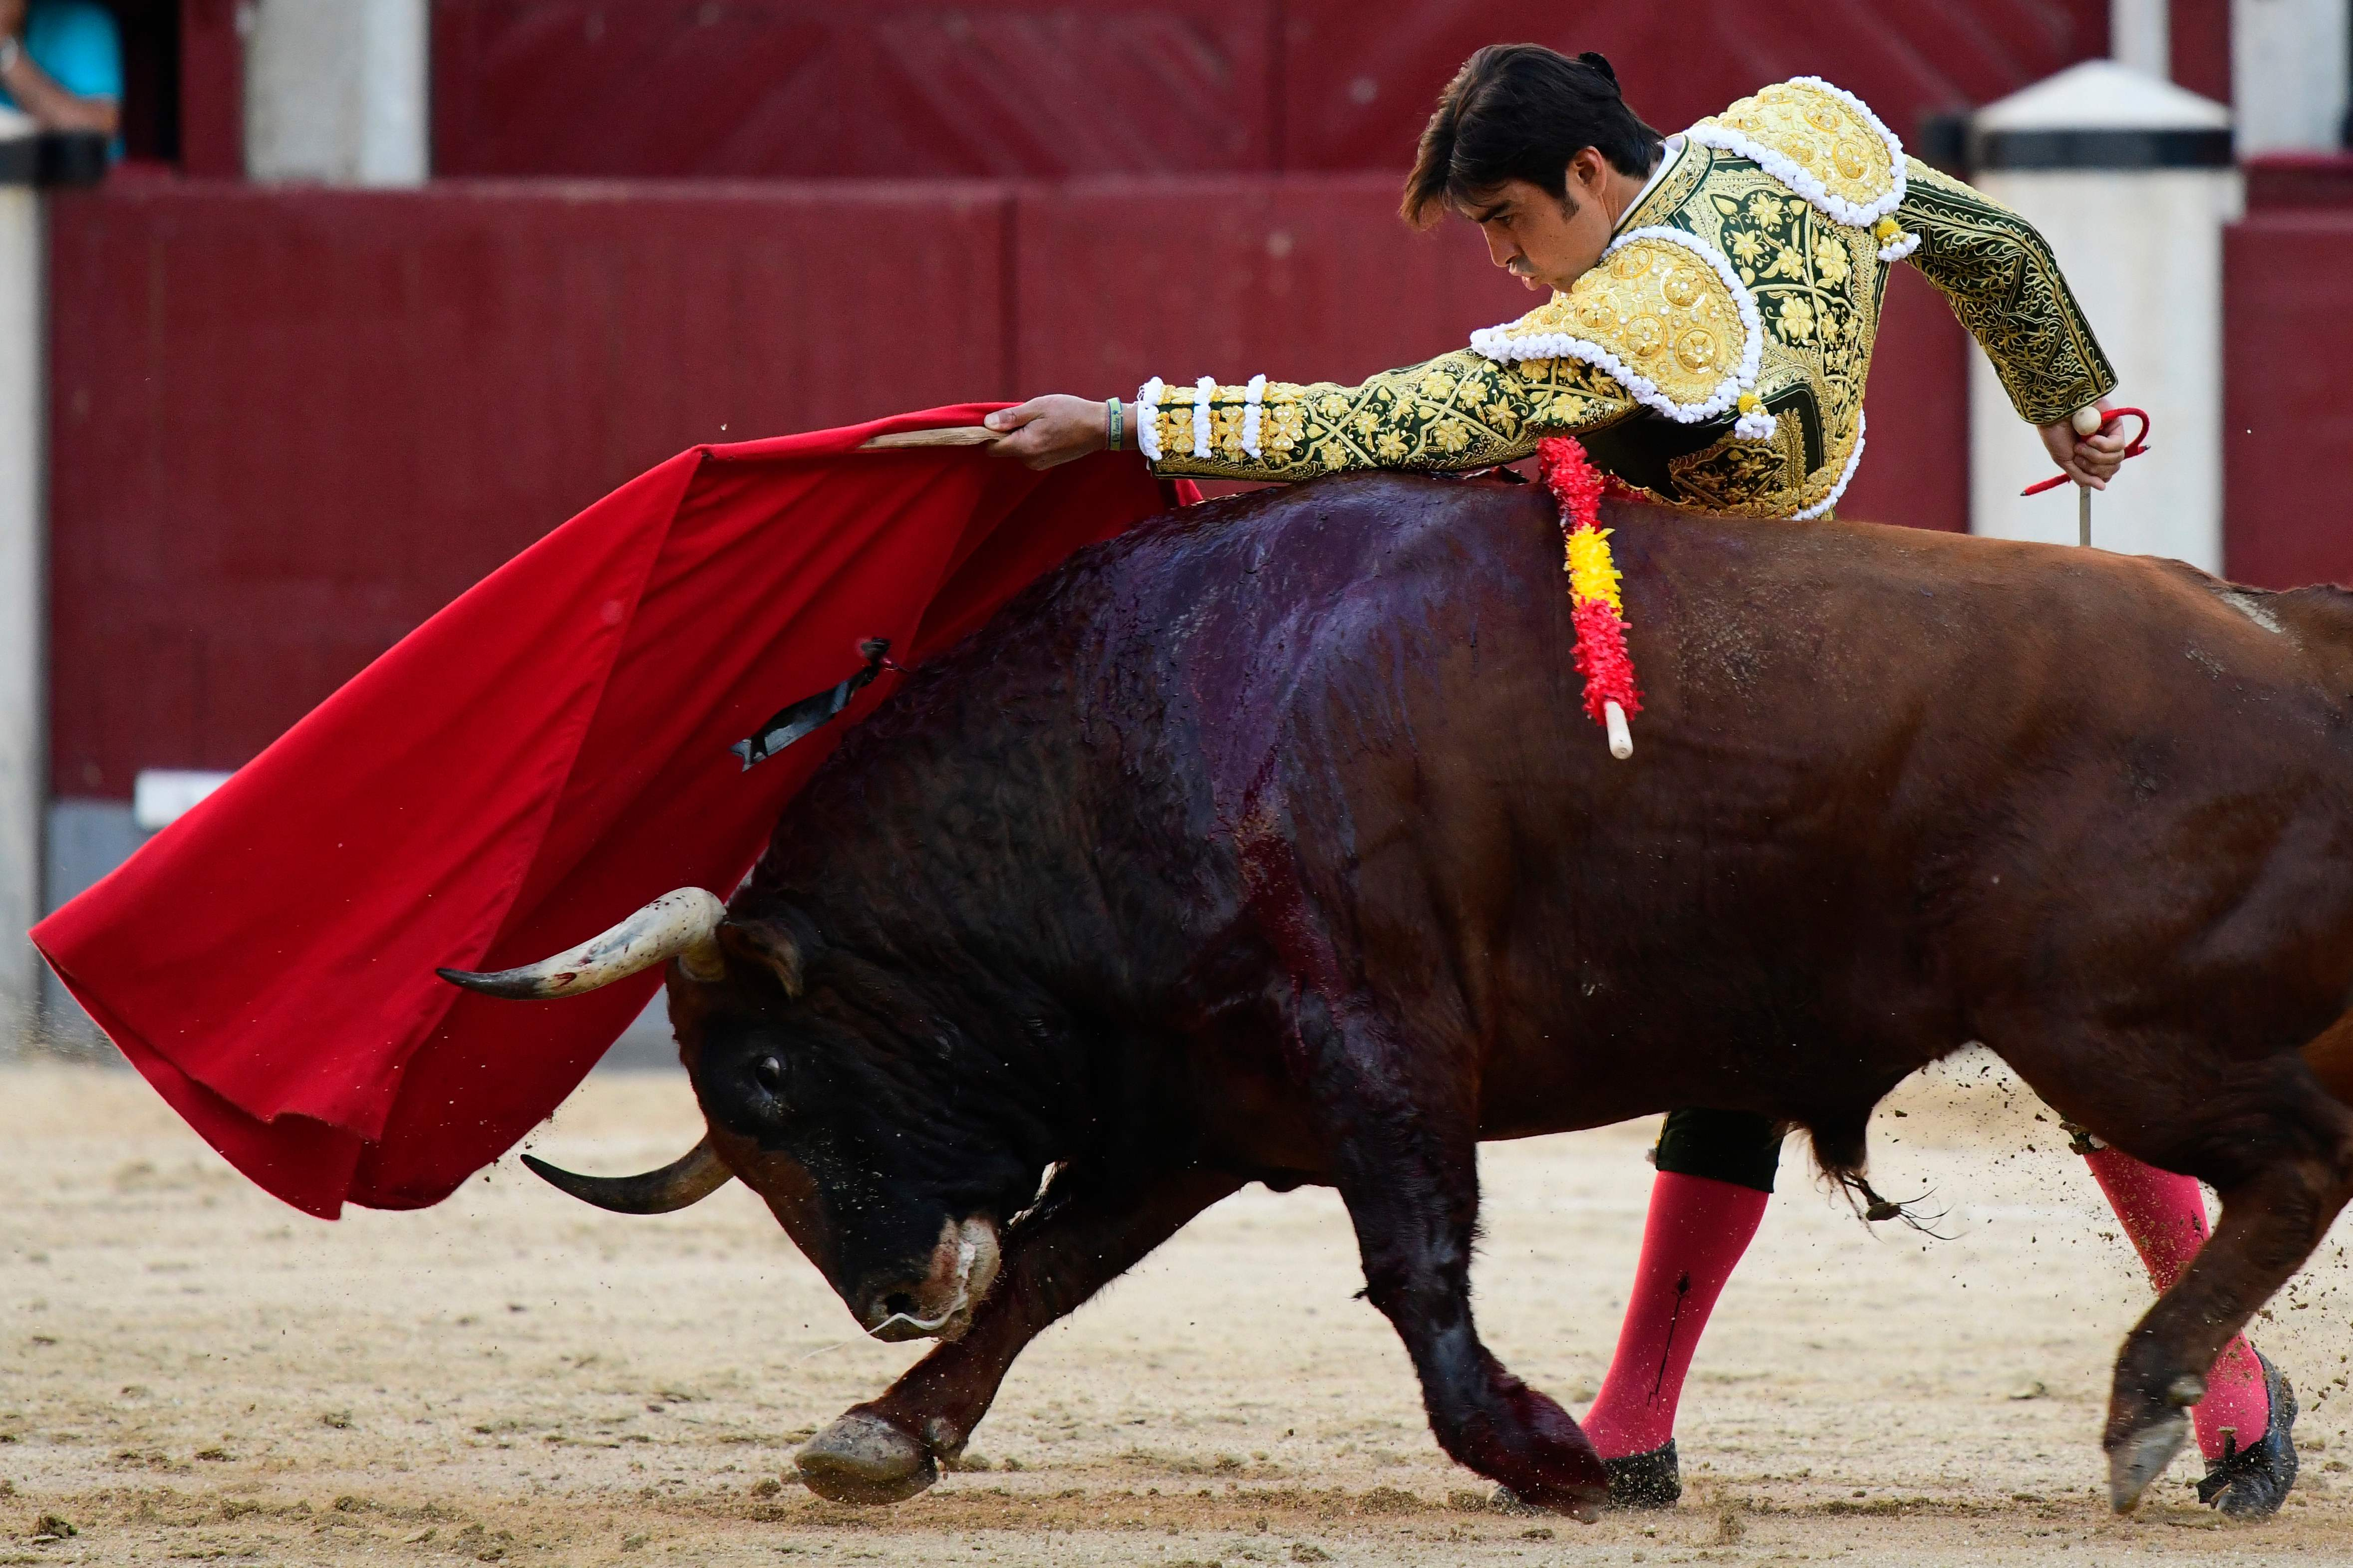 Activists Cry Torture After Matador Wipes The Nose Of A Dying